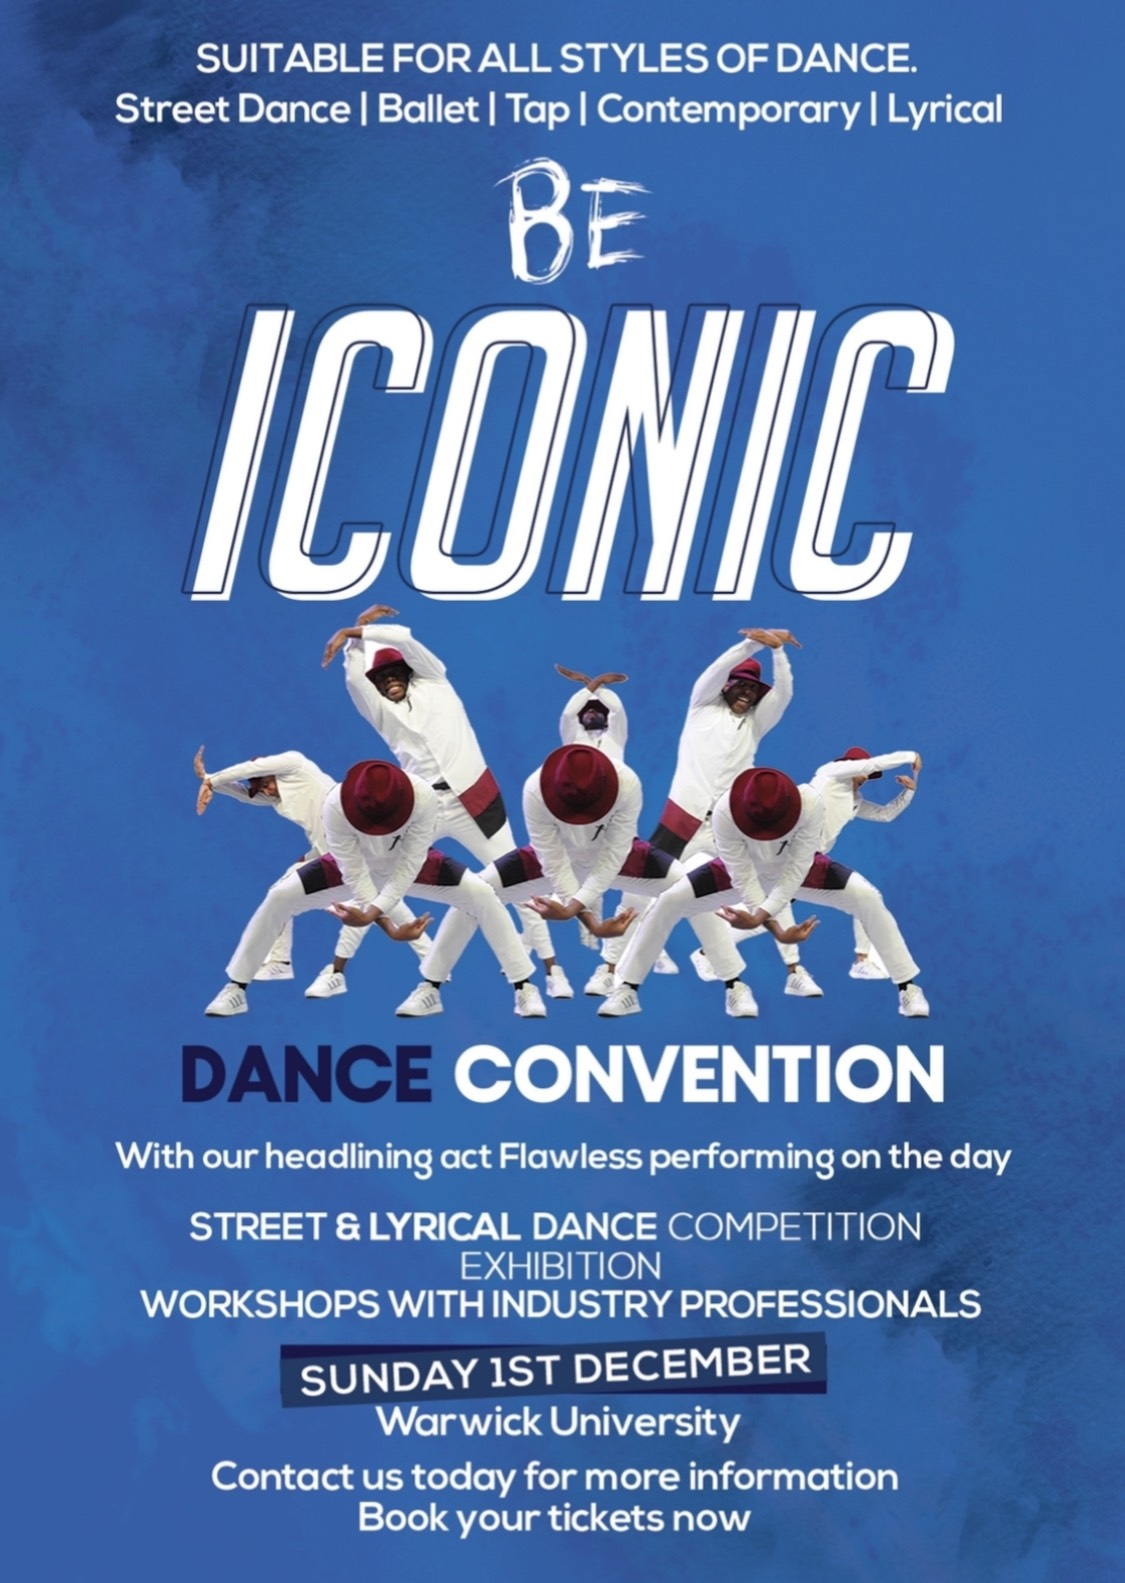 Iconic - Dance Convention.jpg